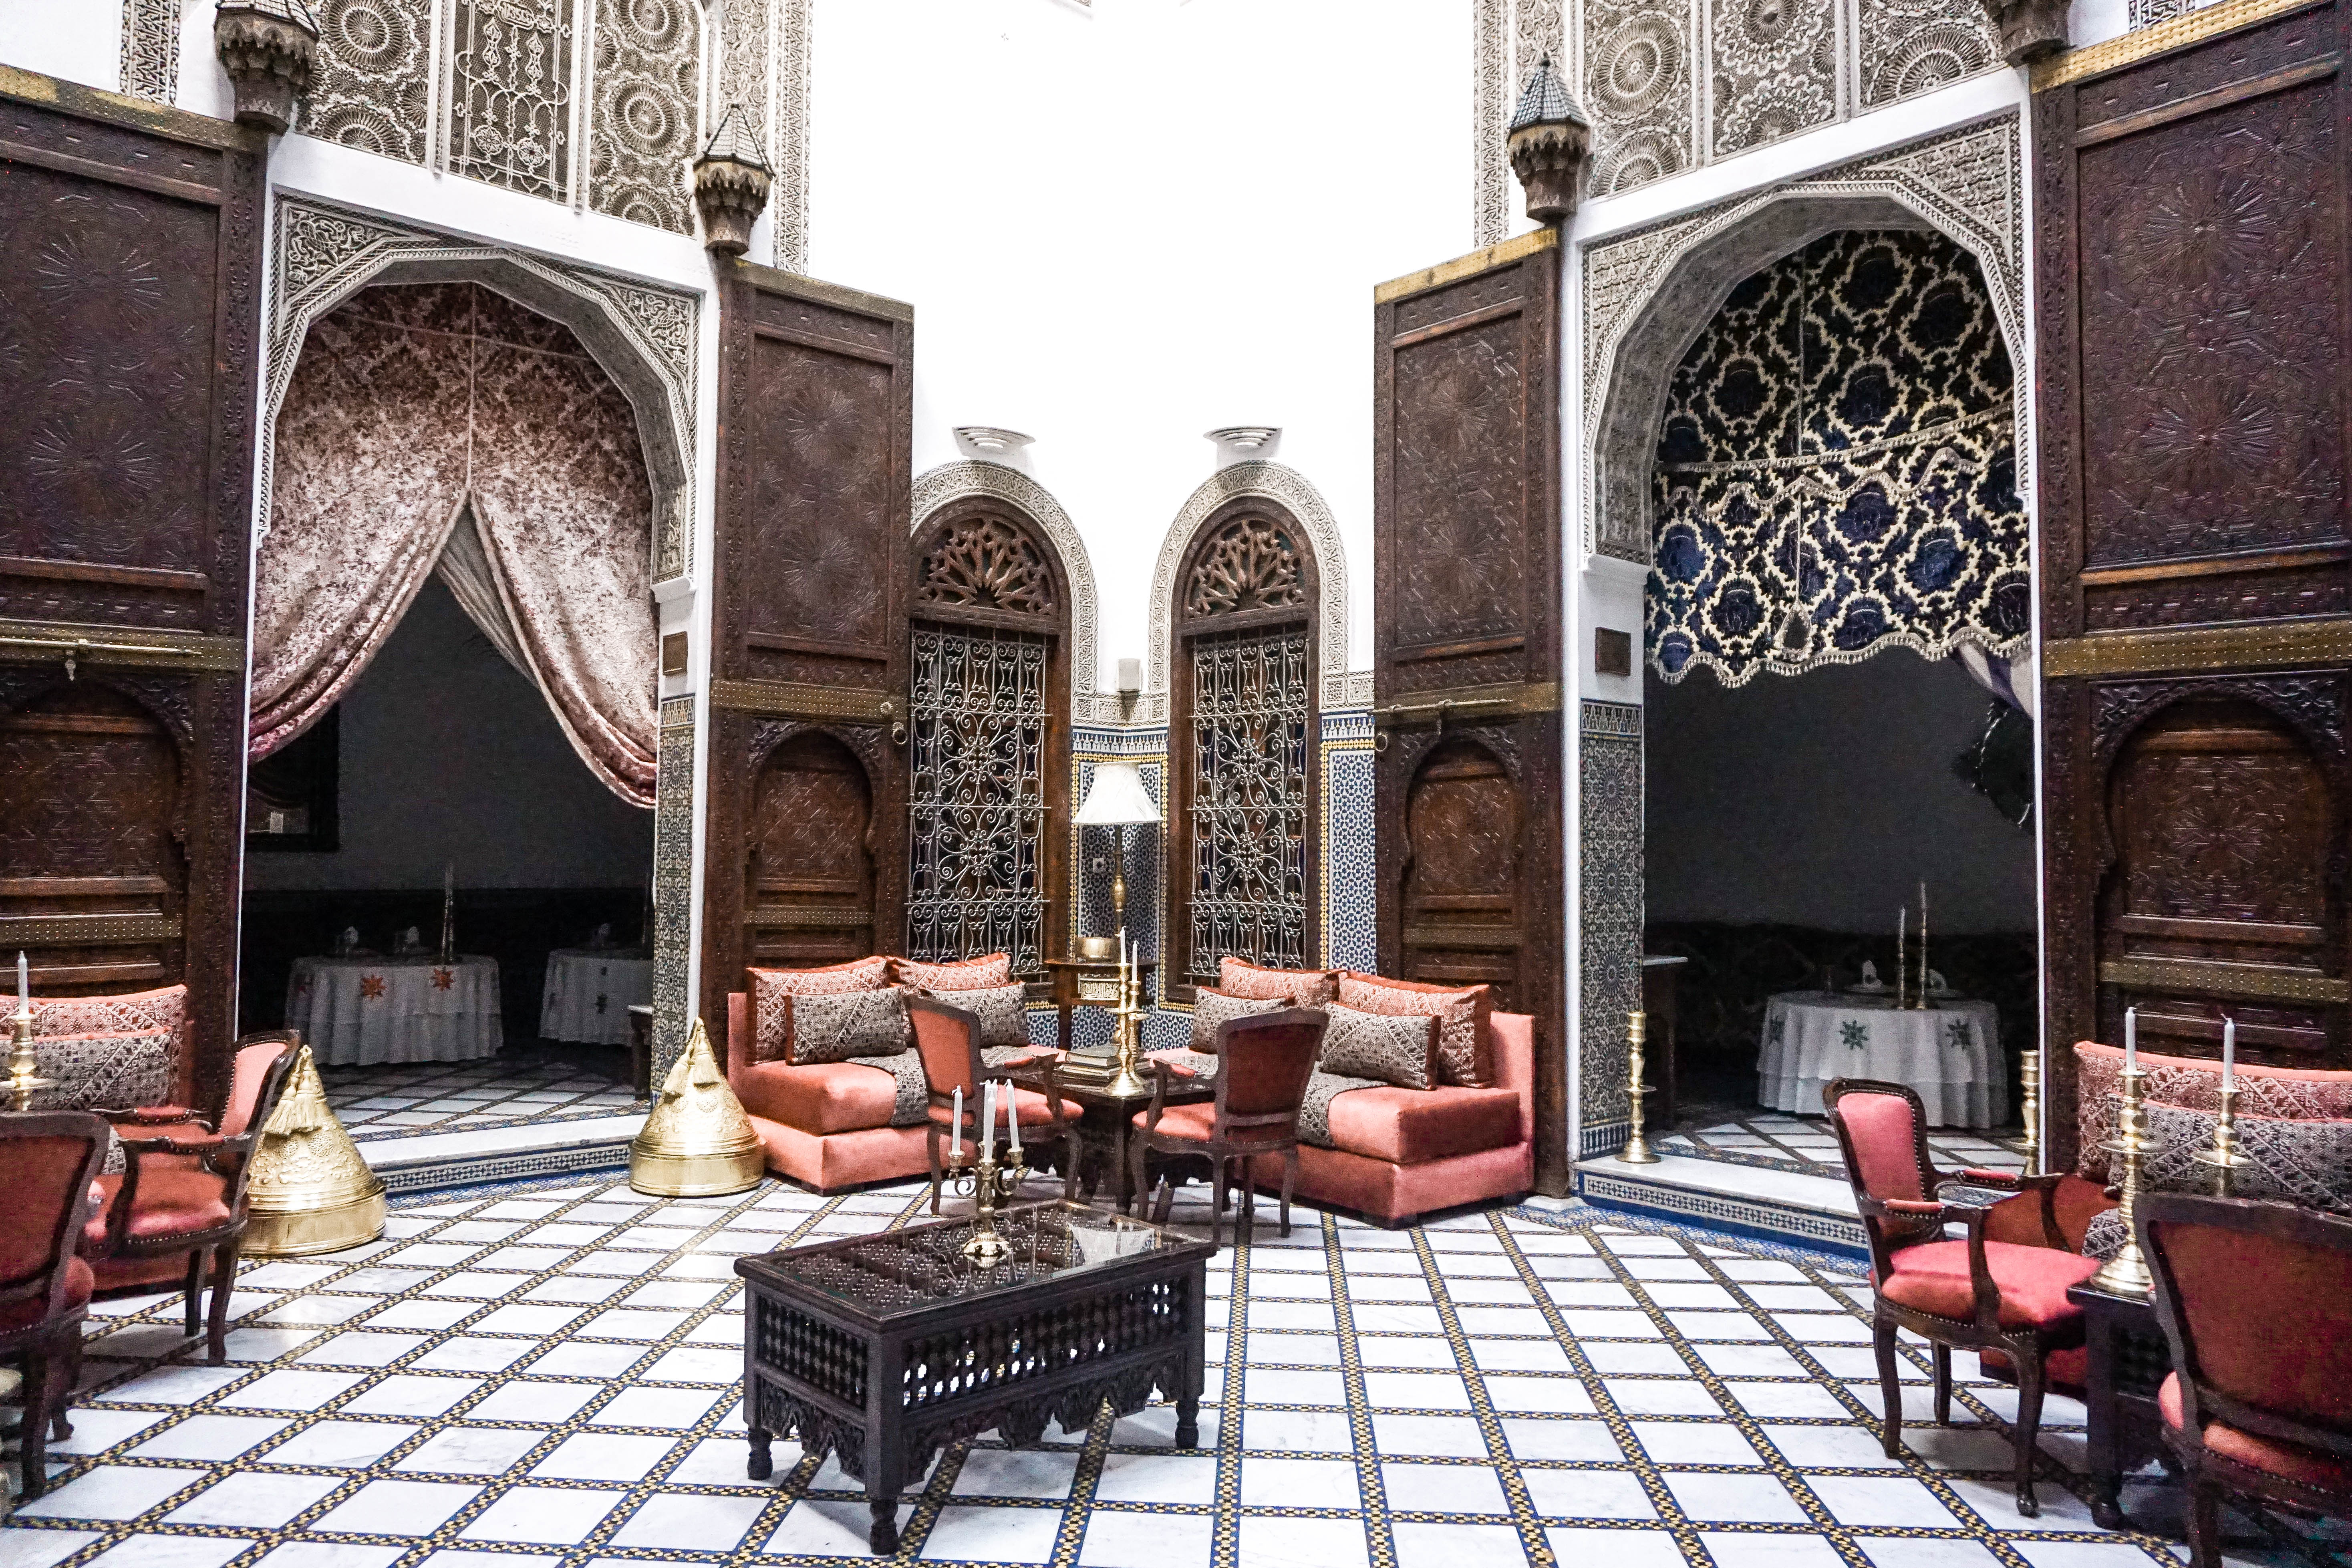 THE 7 MOST INSTAGRAMMABLE SPOTS IN FEZ